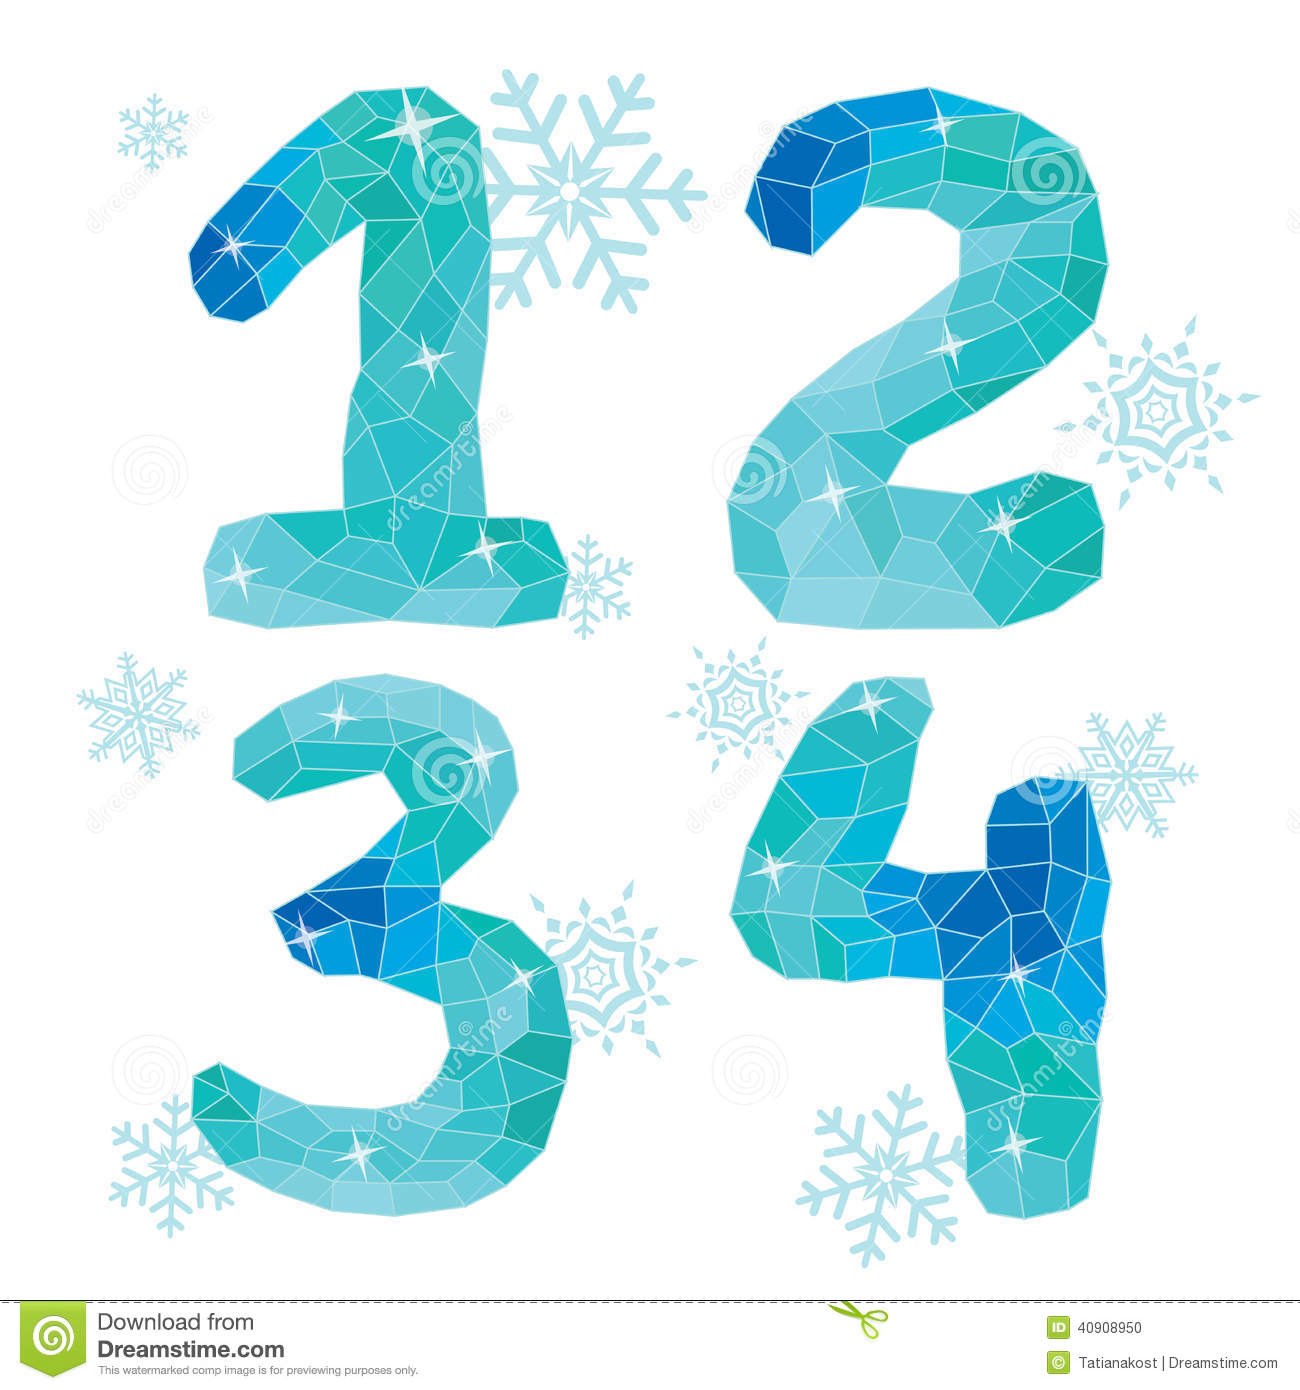 Multicolor polygons isolated numbers 1,2,3,4.Ice winter collect